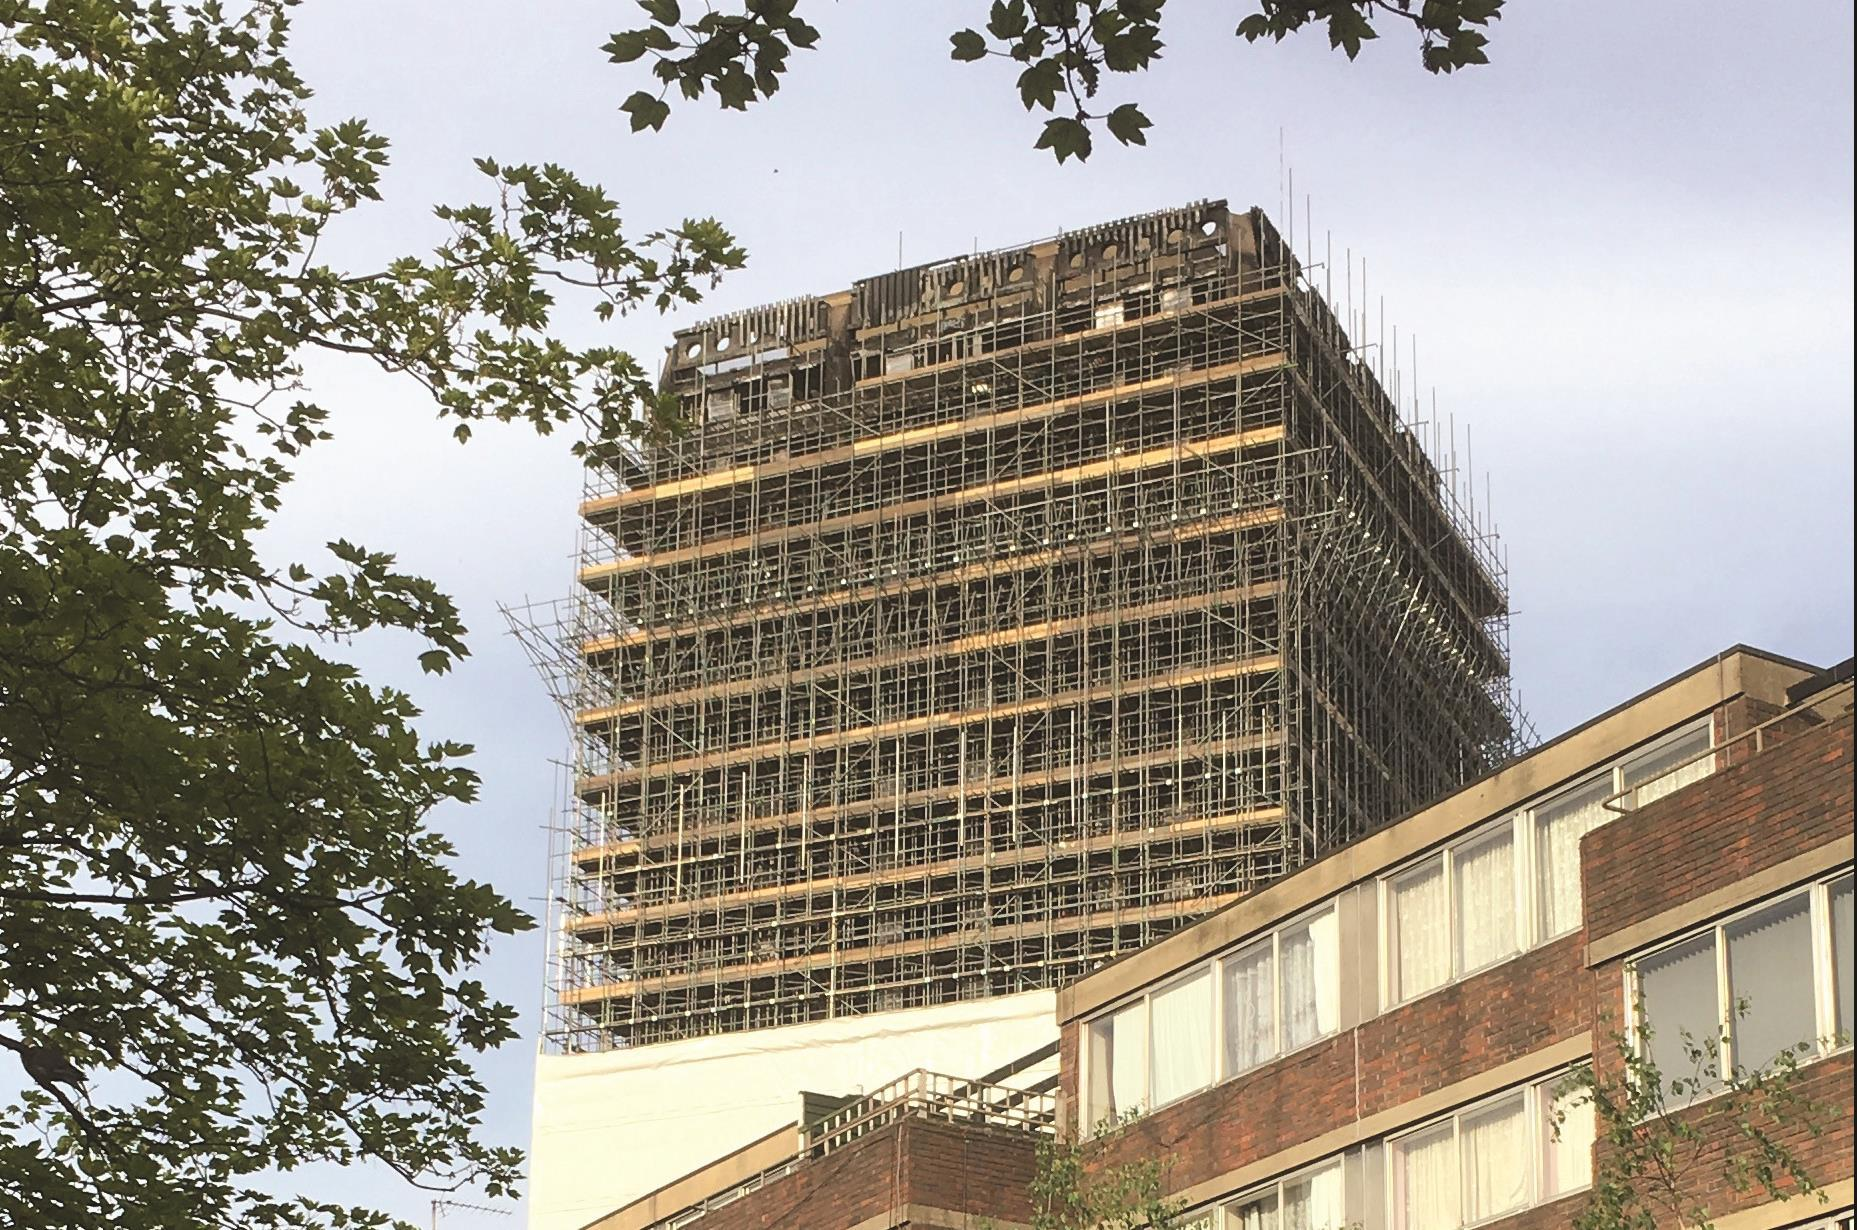 Grenfell inquiry: supplier says cladding combustibility was